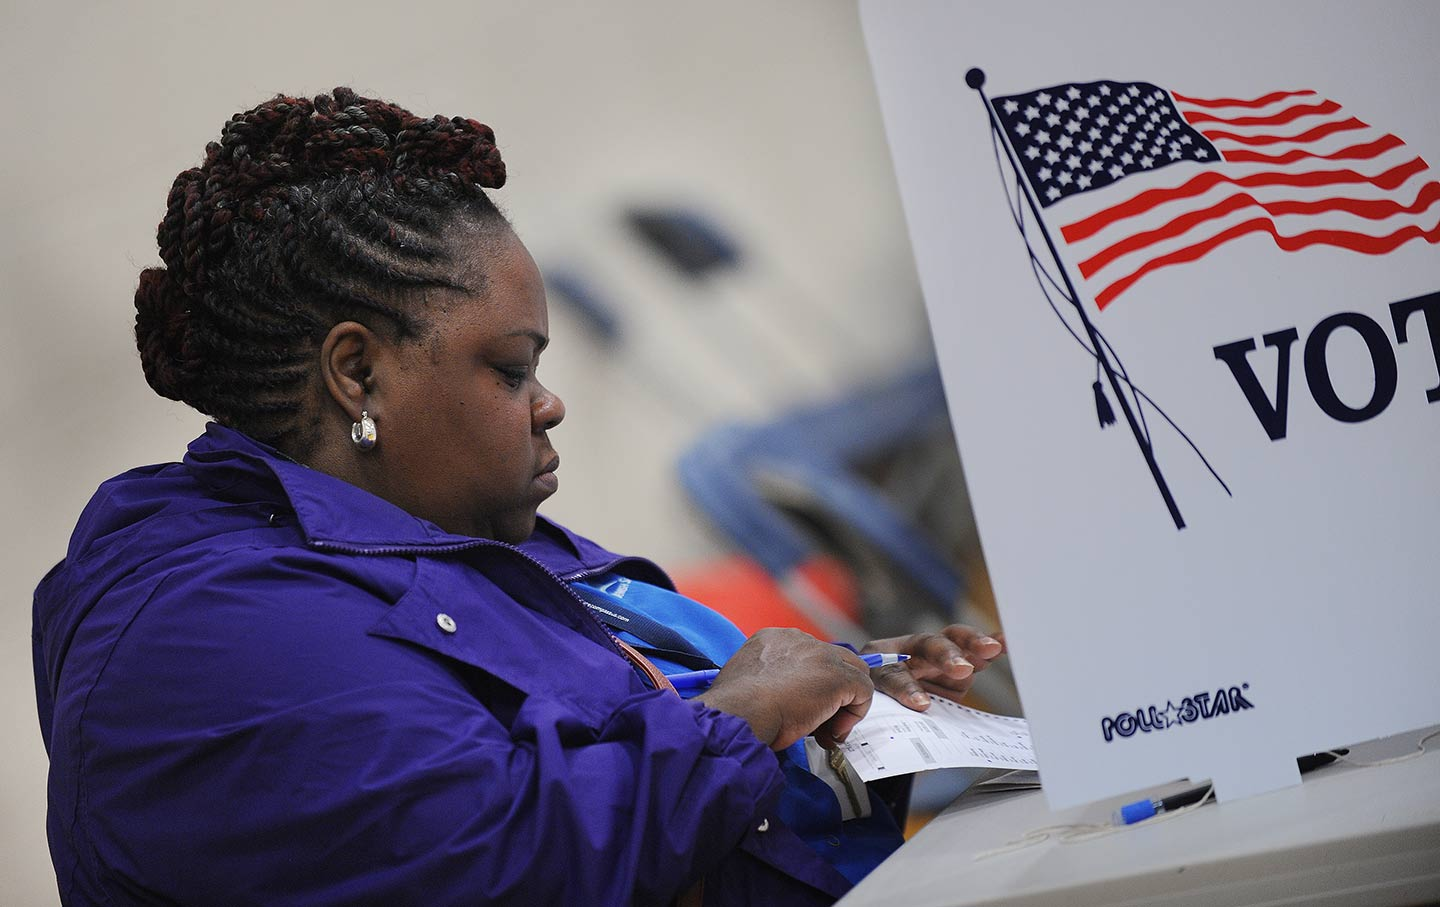 Michigan House Approves Strict New Voter ID Bill Over Dem Objections